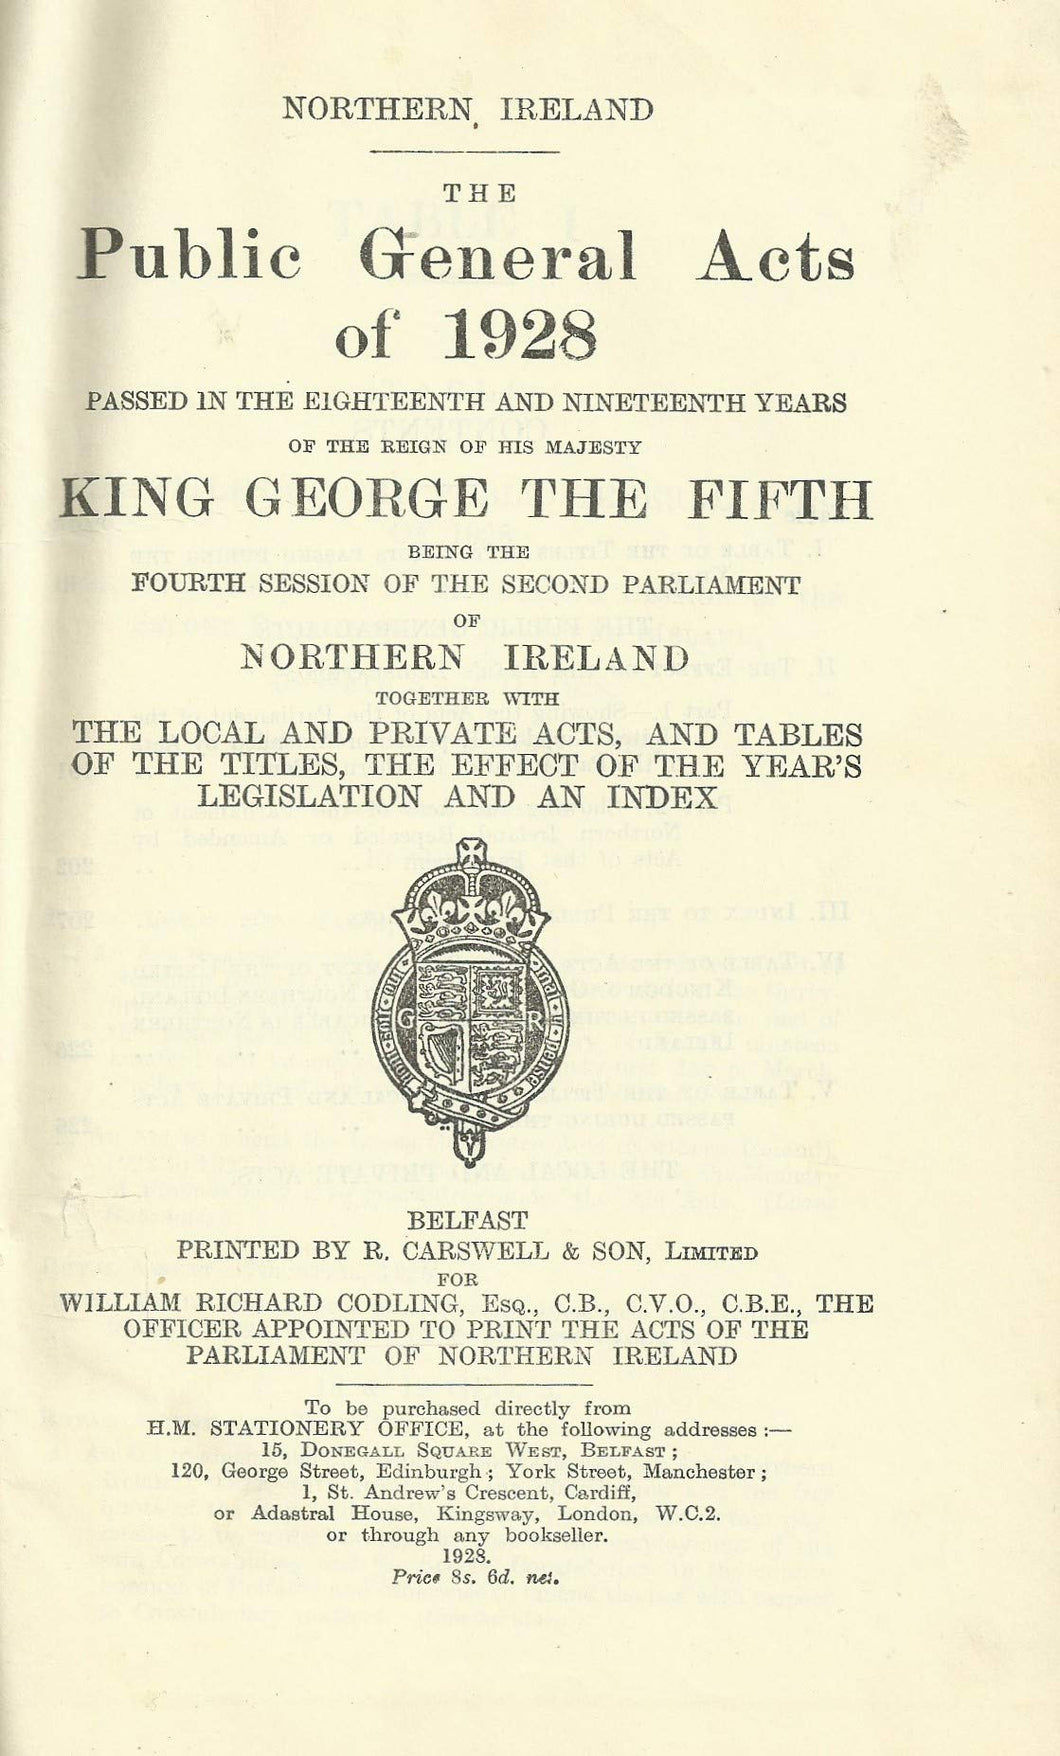 Northern Ireland Statutes: The Public General Acts of 1928